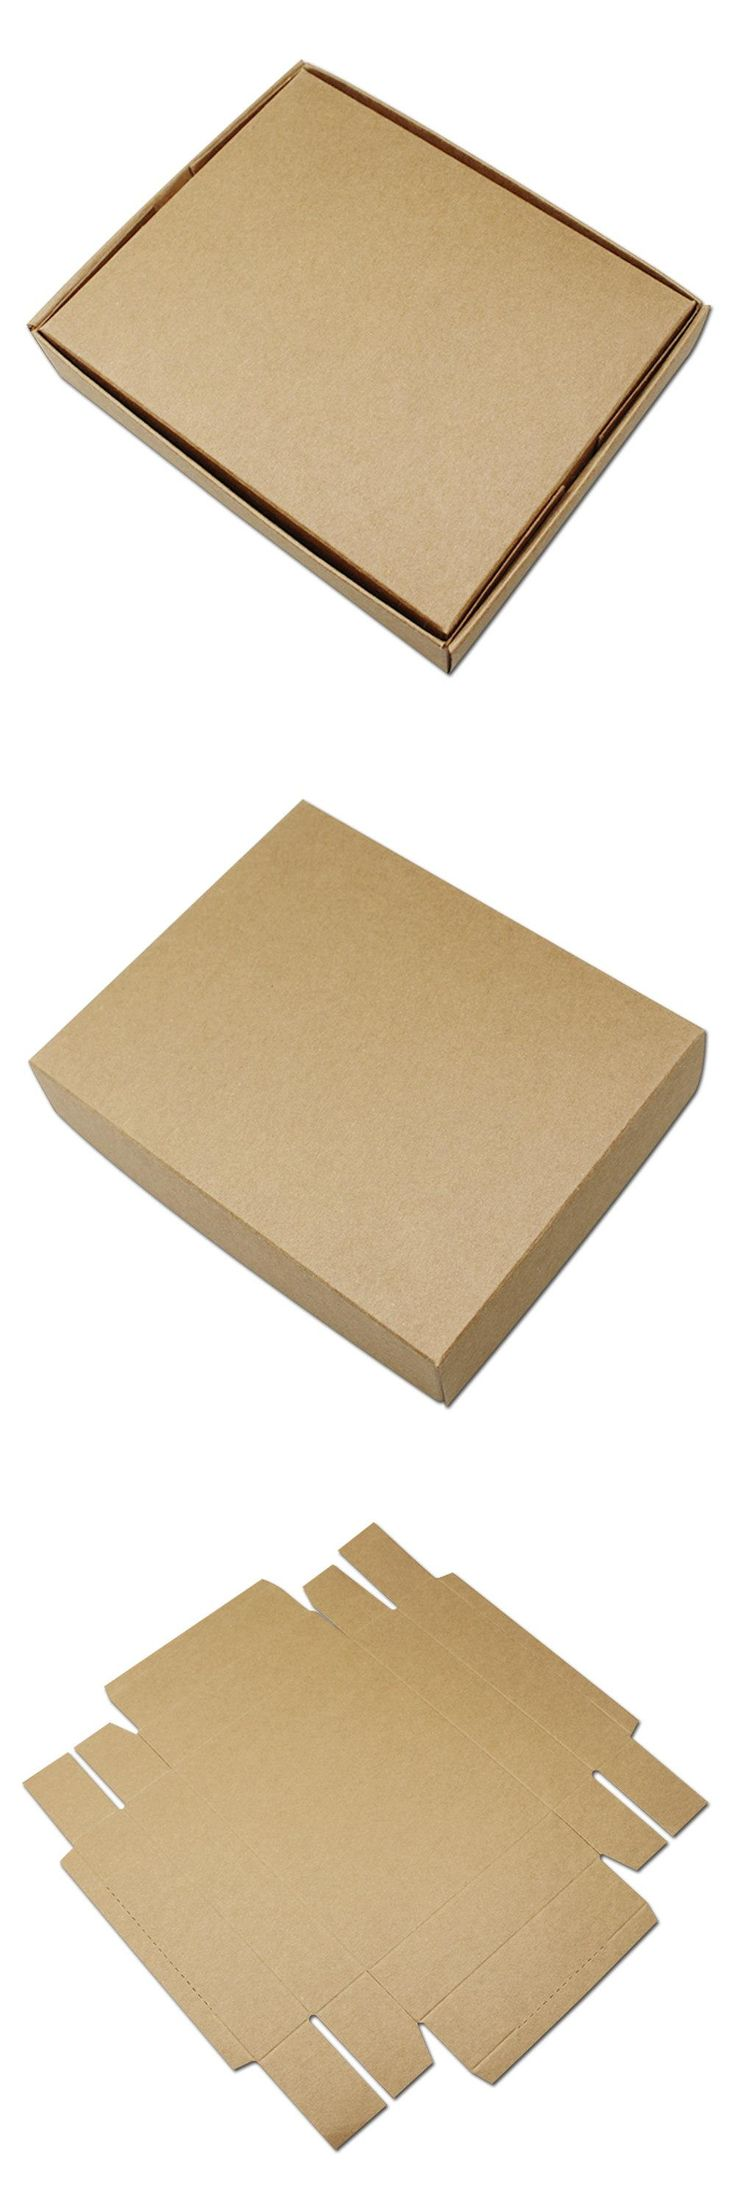 Craft containers with lids -  Visit To Buy 22 9 4 5cm Vintage Brown Kraft Paper Box